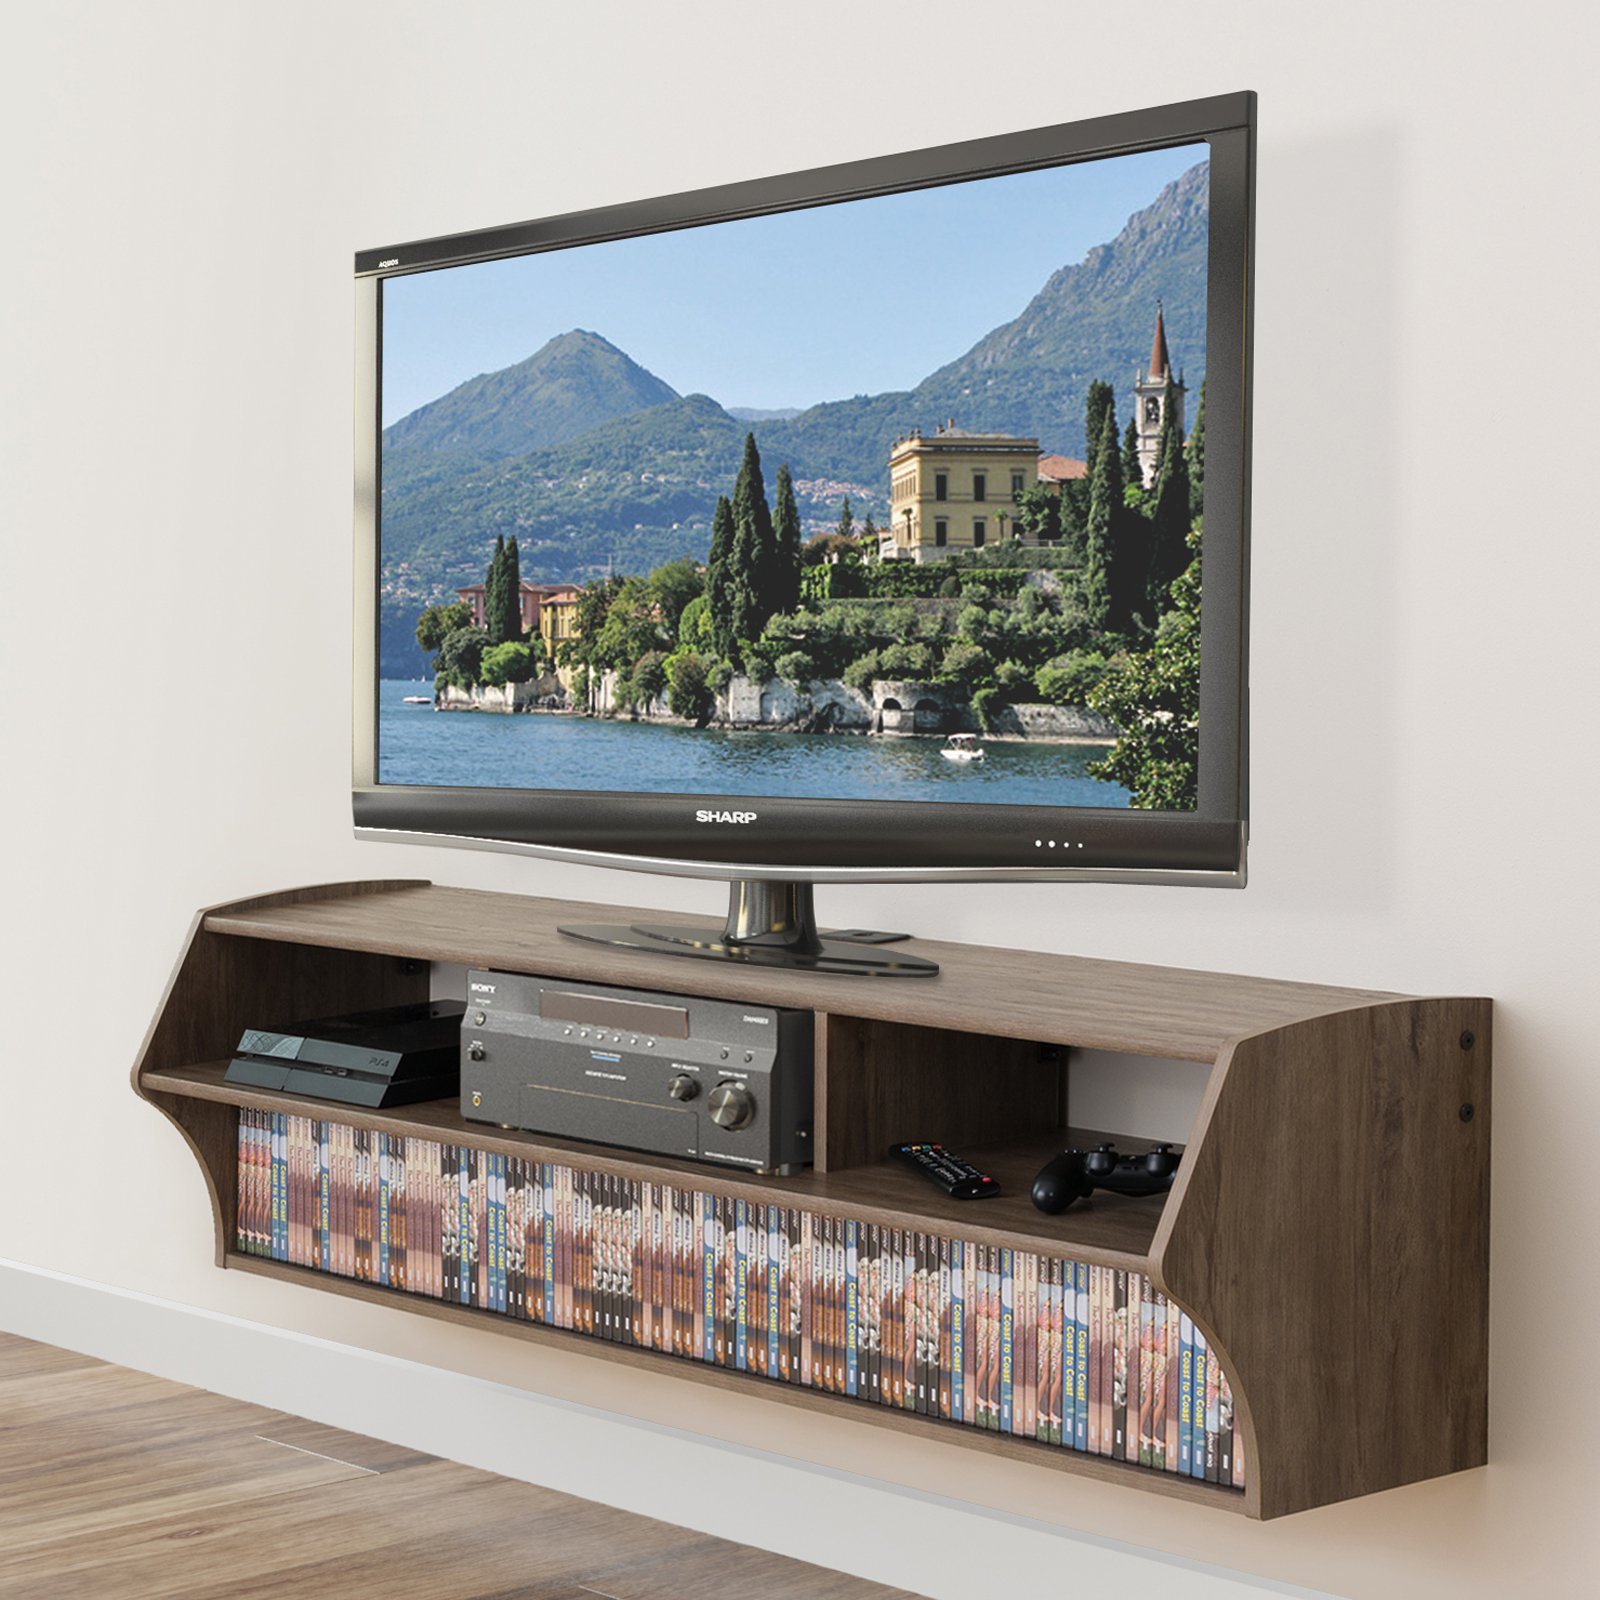 Prepac Altus Plus Wall Mounted TV Stand Drifted Gray by Prepac Furniture